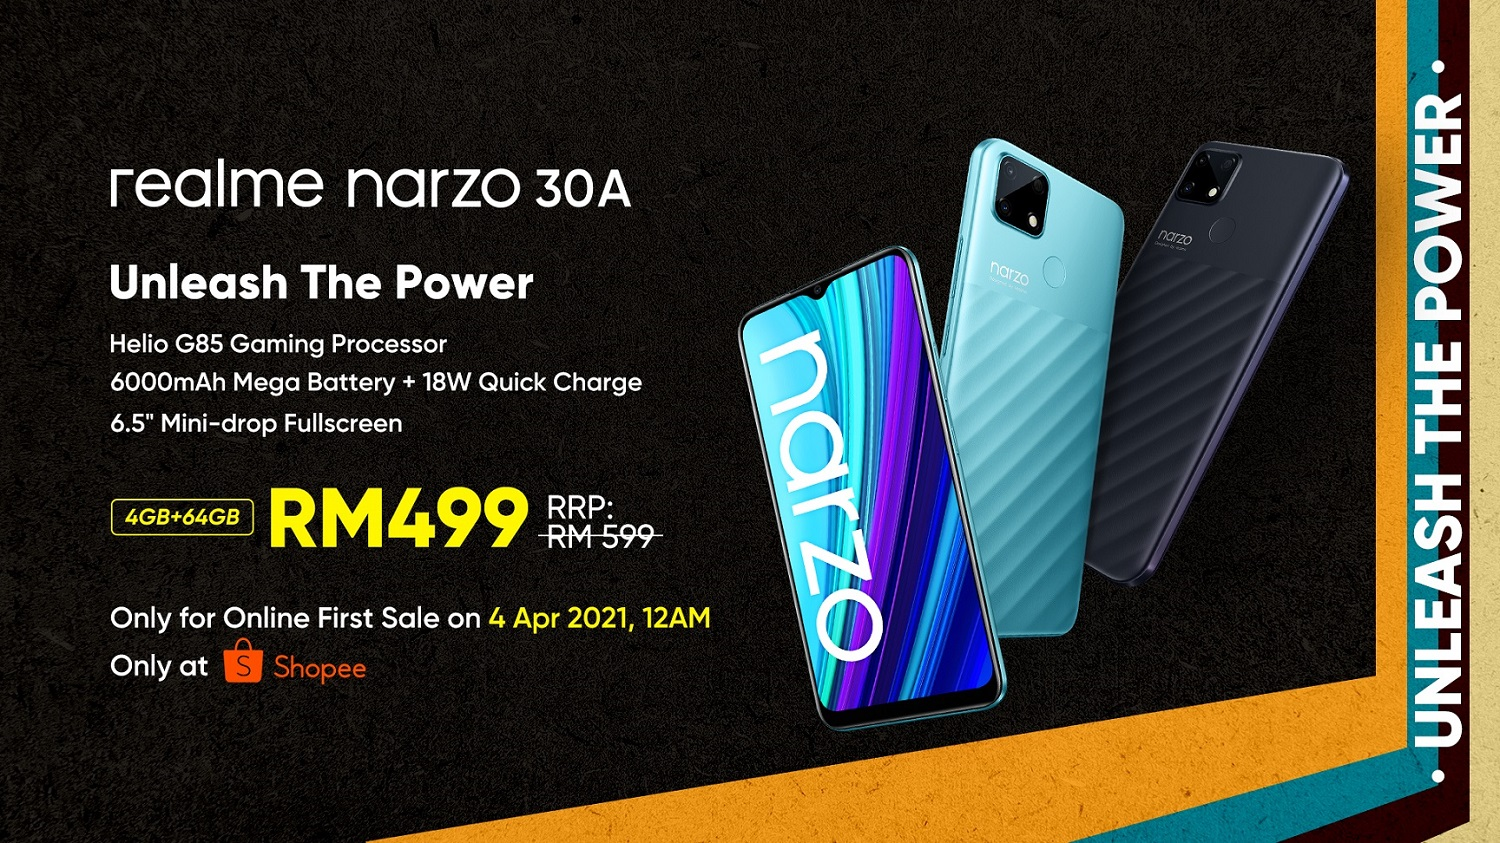 realme Narzo 30A Revealed Along With Three Gaming Accessories for Young Malaysian Mobile Gamers